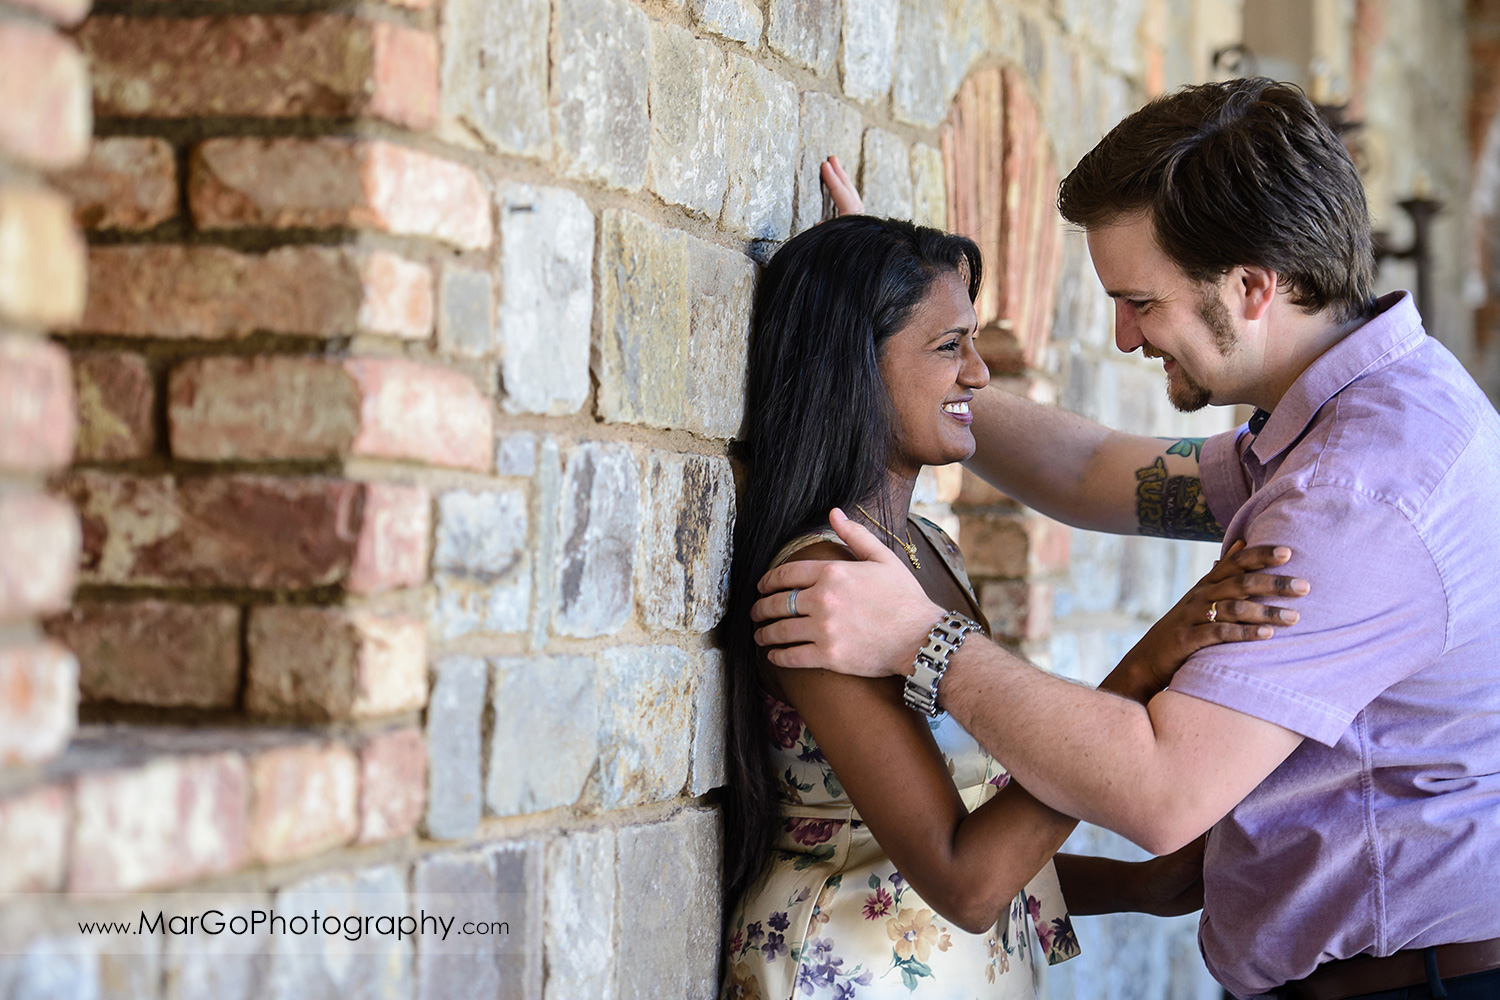 man in pink shirt and Indian woman in flower dress leaning against the brick wall and laughing during engagement session at Castello di Amorosa in Calistoga